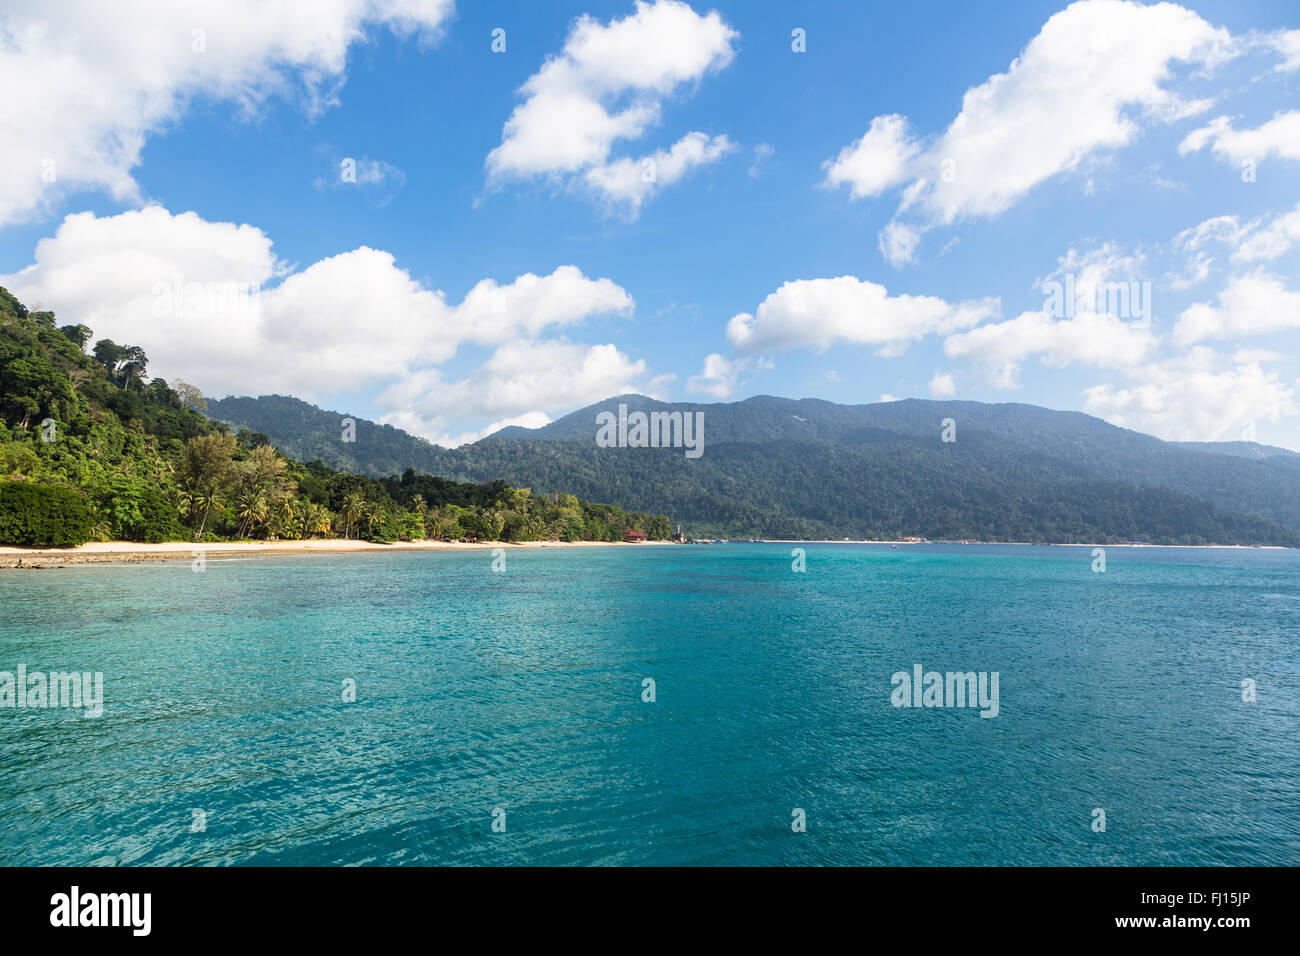 Tioman island is a stunning tropical island off the east coast of Malaysian Peninsula. - Stock Image